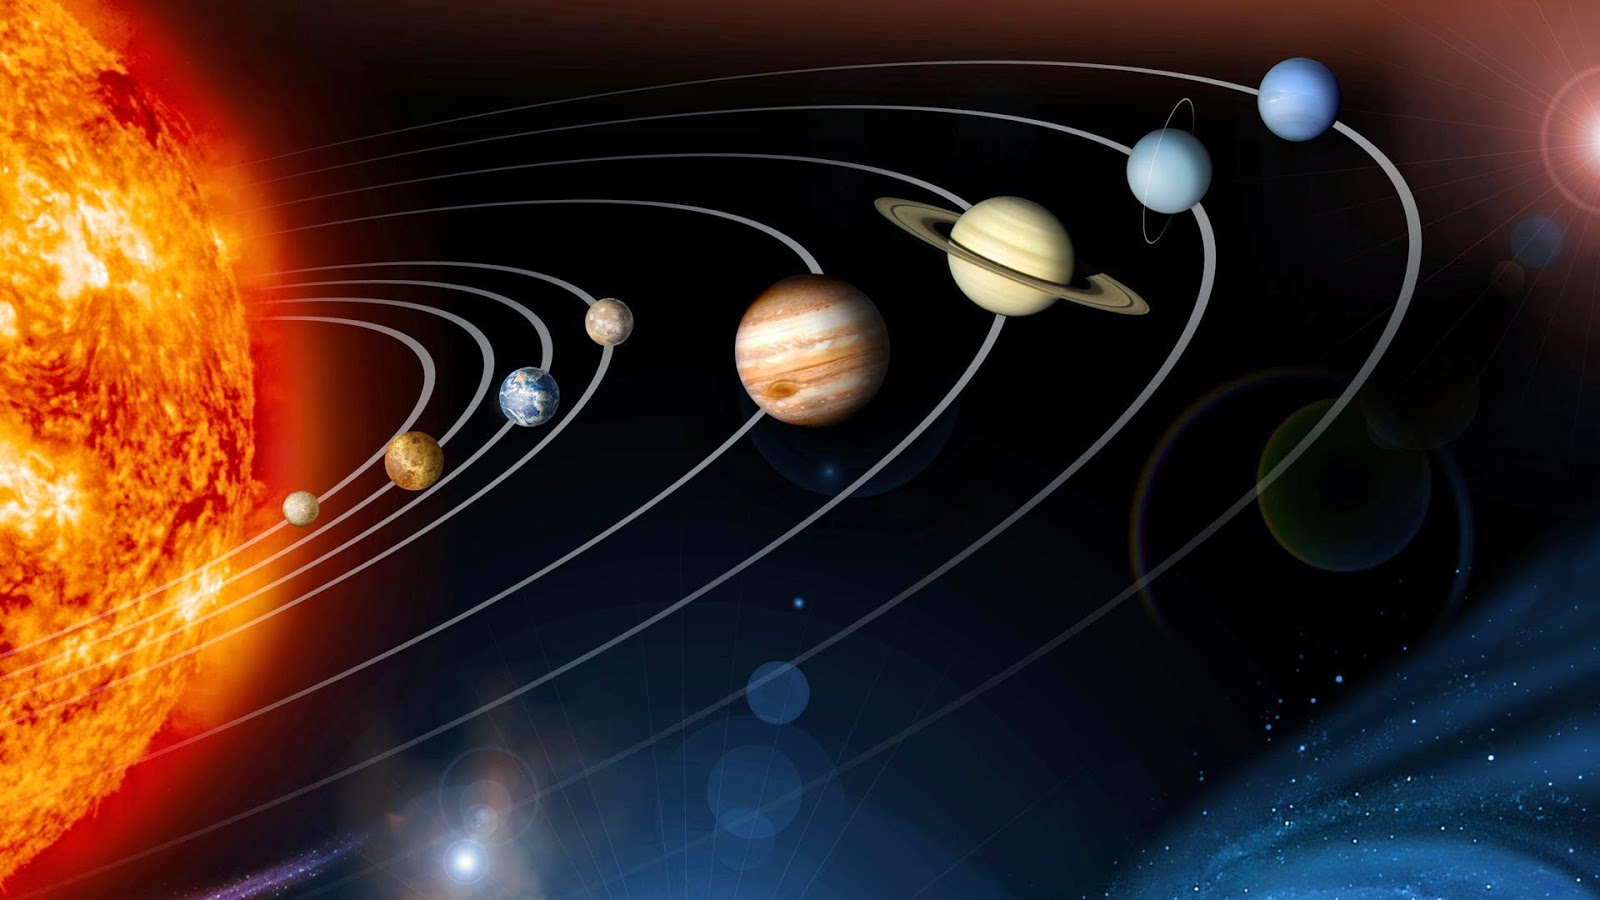 more planets in space - photo #8